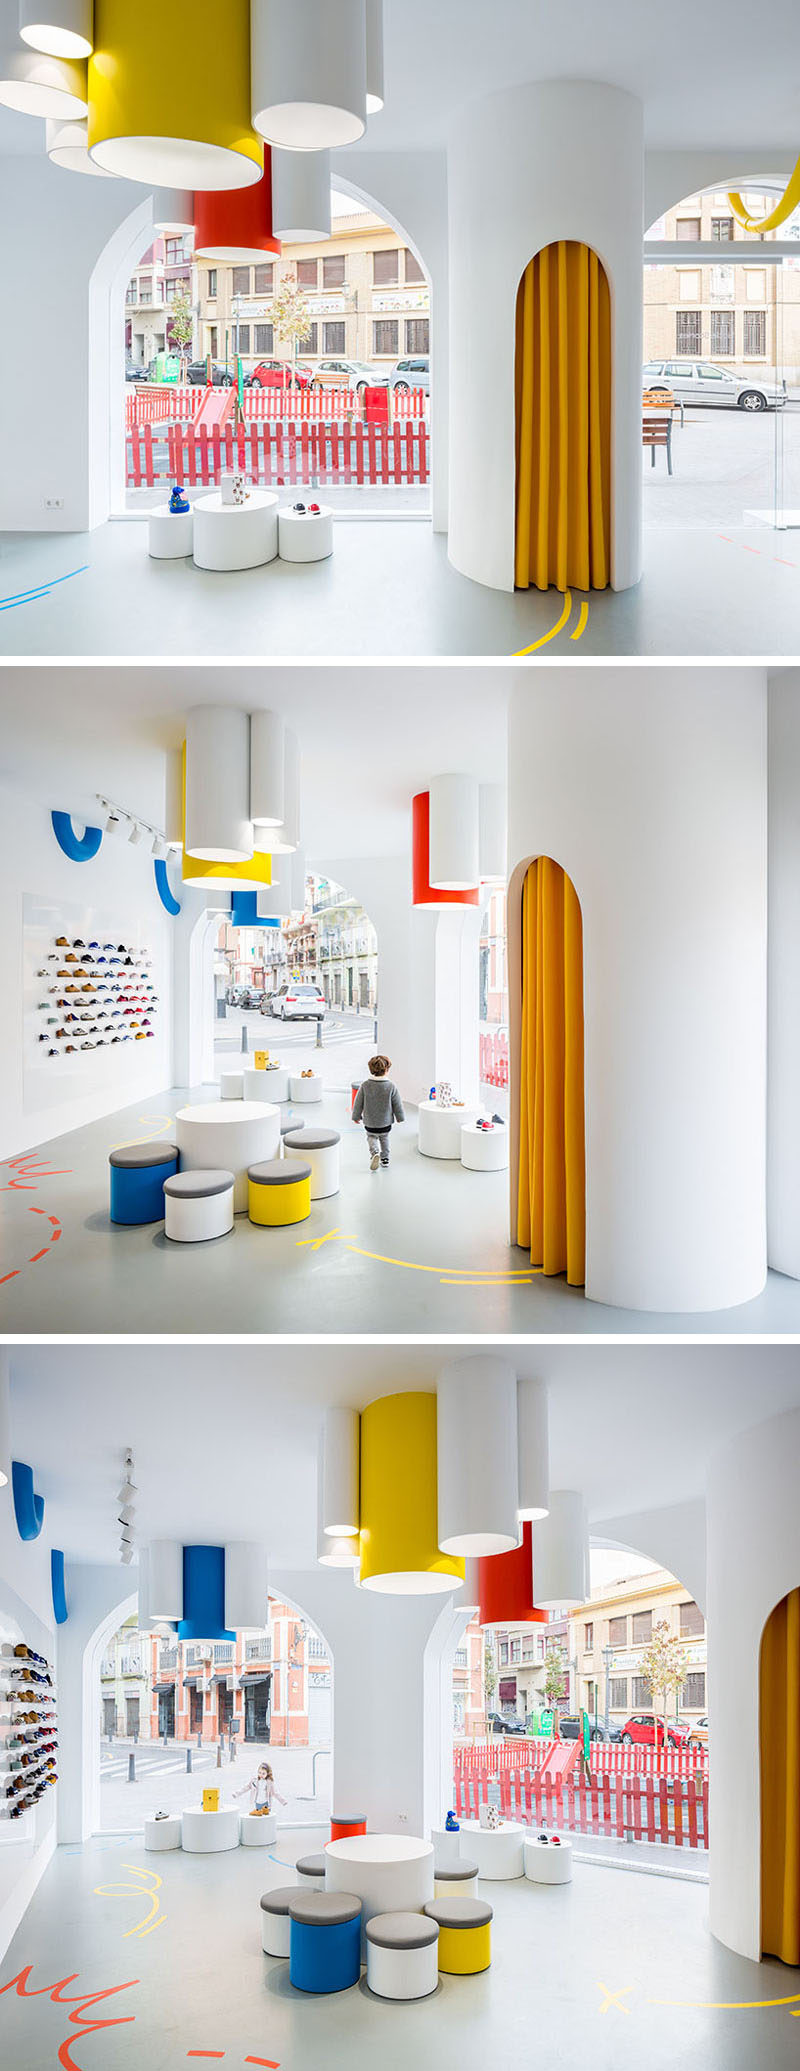 Once inside this modern retail store, the bright white interior is filled with natural light from the large windows, and additional tube lights hang from the ceiling. Pops of color are used to add a fun touch to the interior. #ModernRetailStore #KidsStore #InteriorDesign